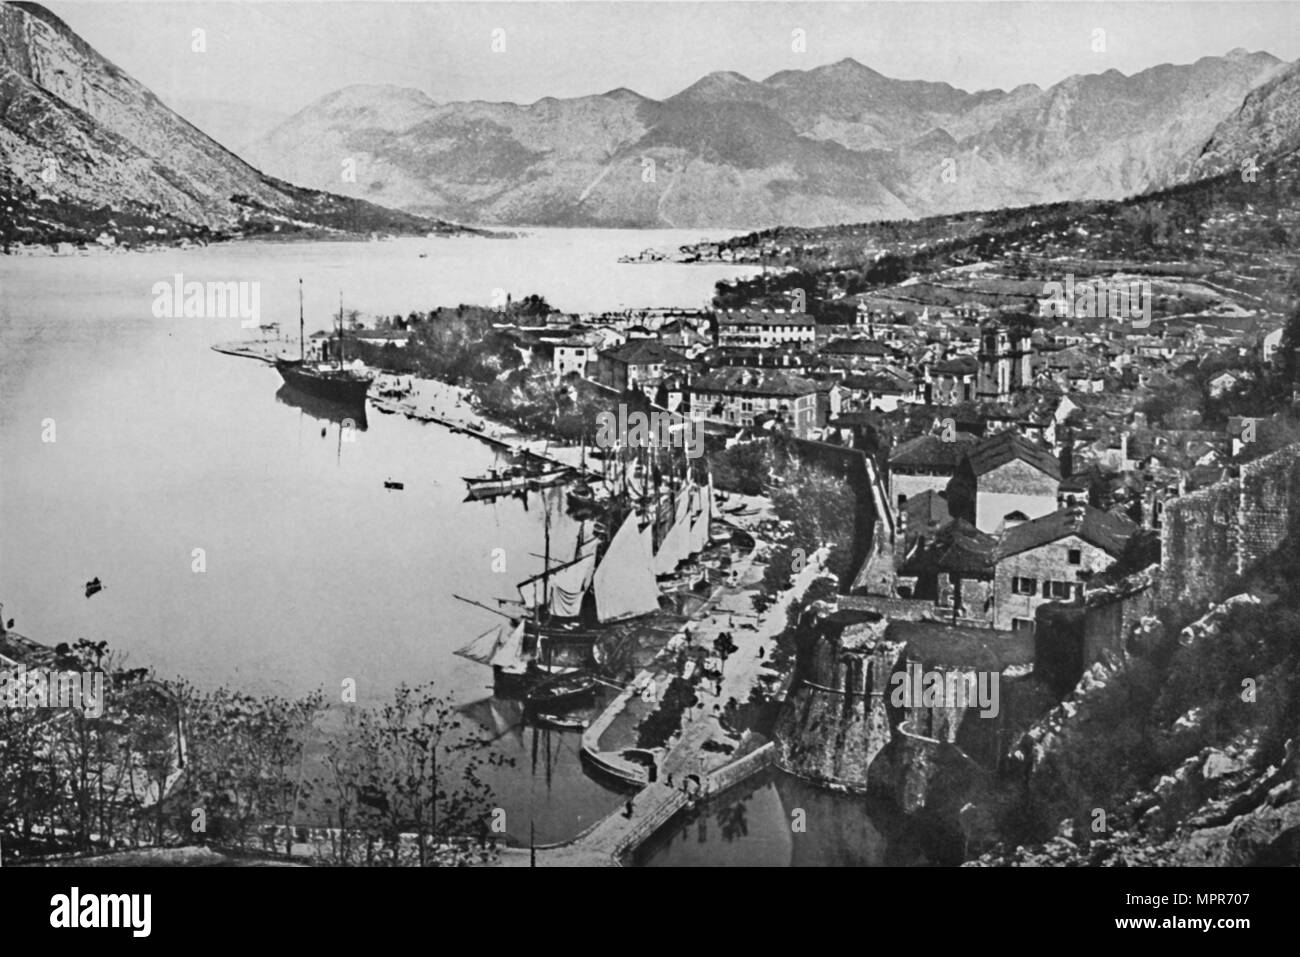 'The Harbor of Mezzo', 1913. Artist: Unknown. - Stock Image